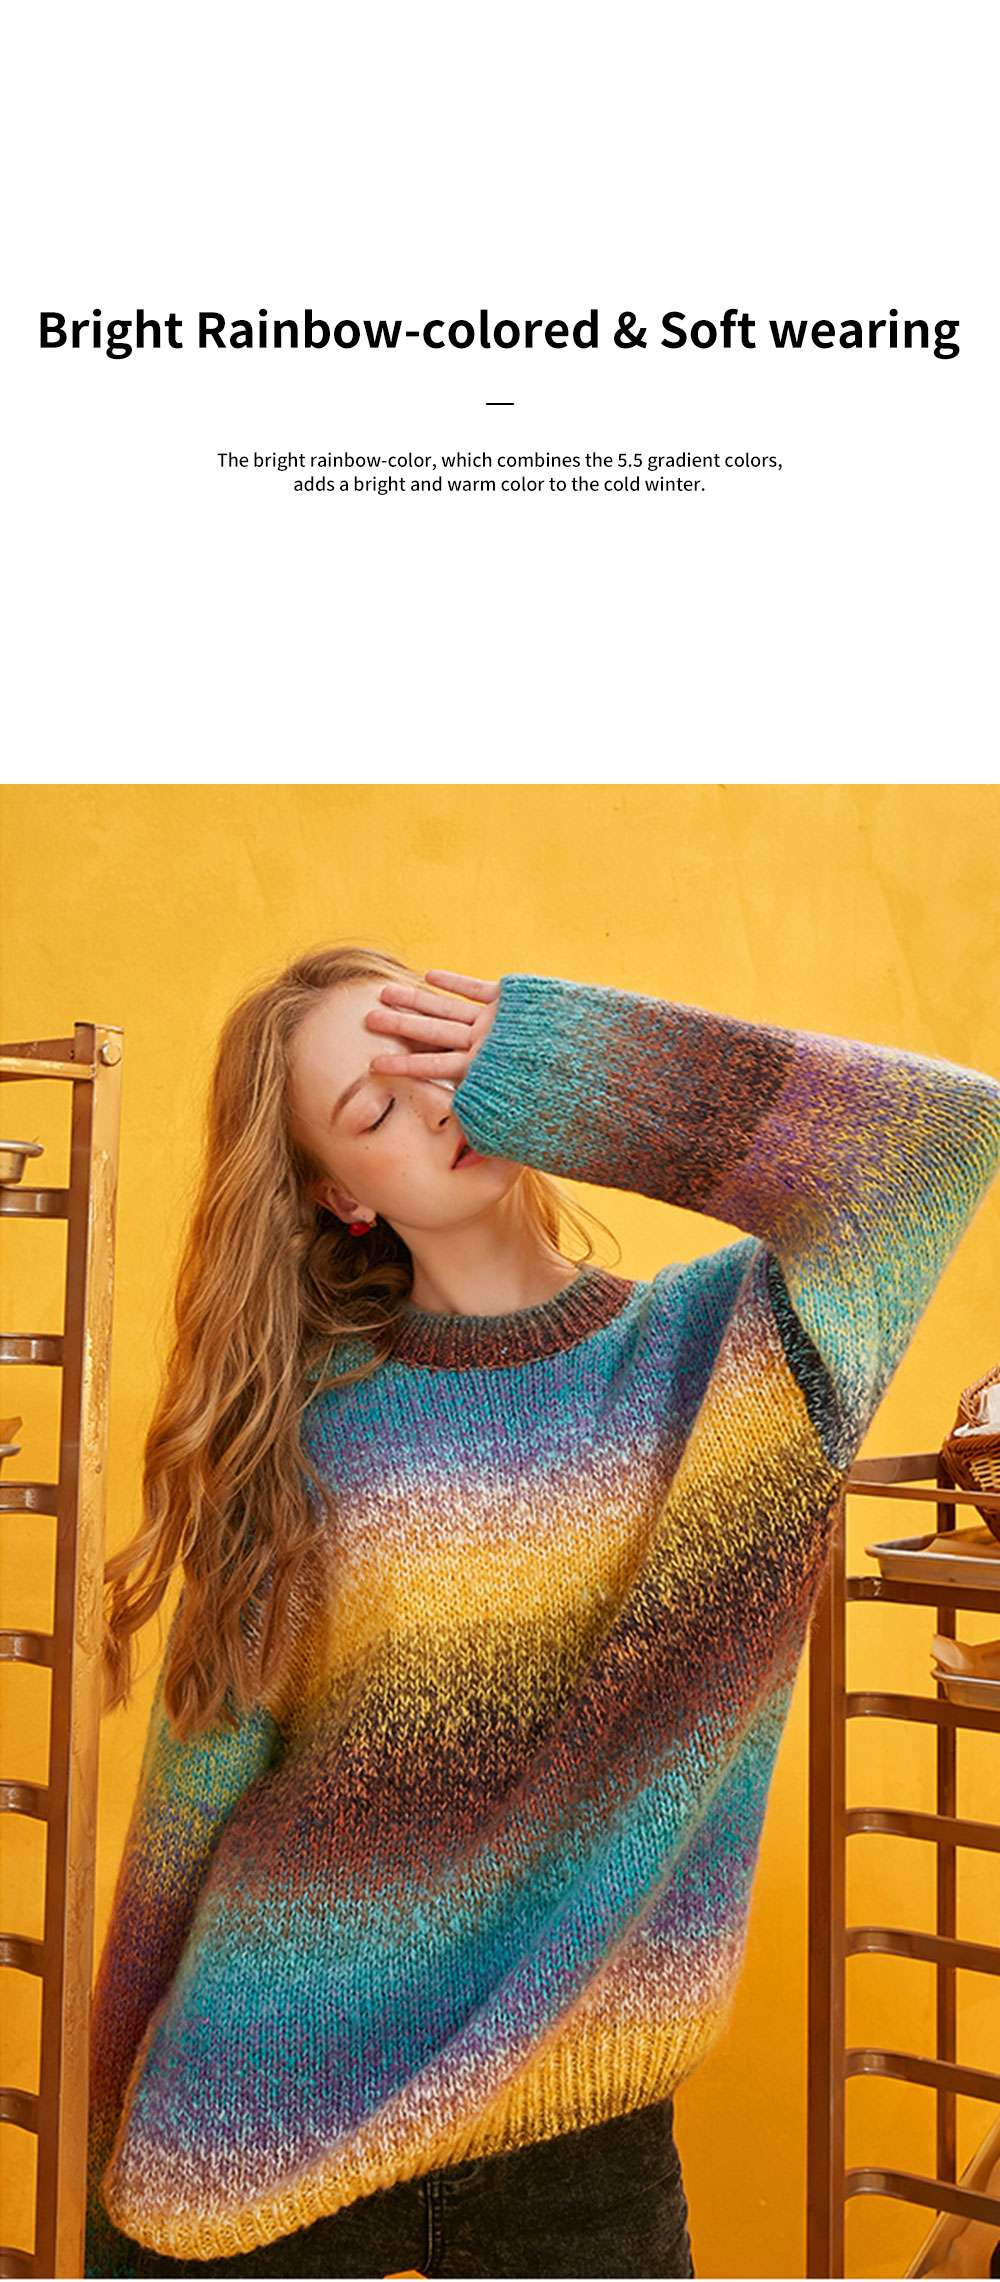 ELFSACK Blue Childhood Rainbow Stripe Knitwear Women's Loose Sweater with Round Neck and Long Sleeves for Autumn and Winter 2